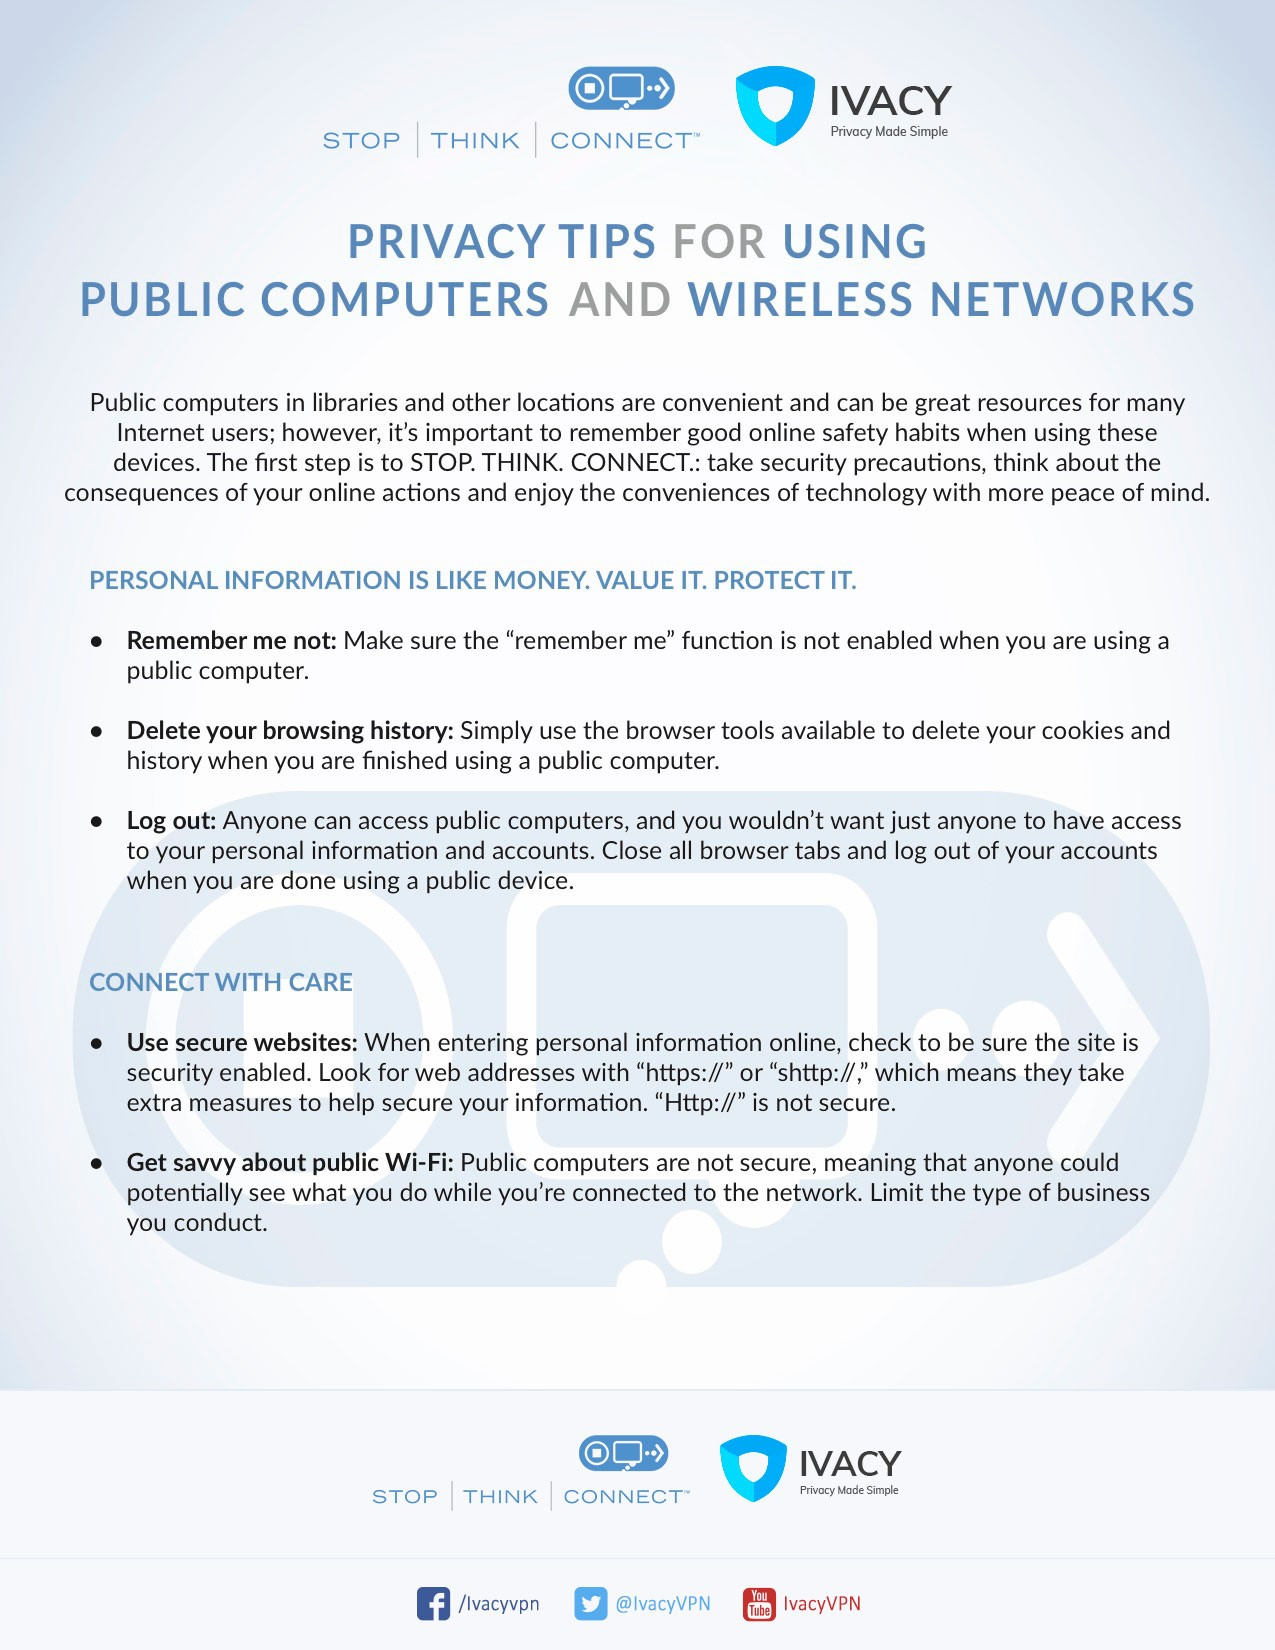 Privacy-Tips-for-Wi-Fi-and-Public-Computers